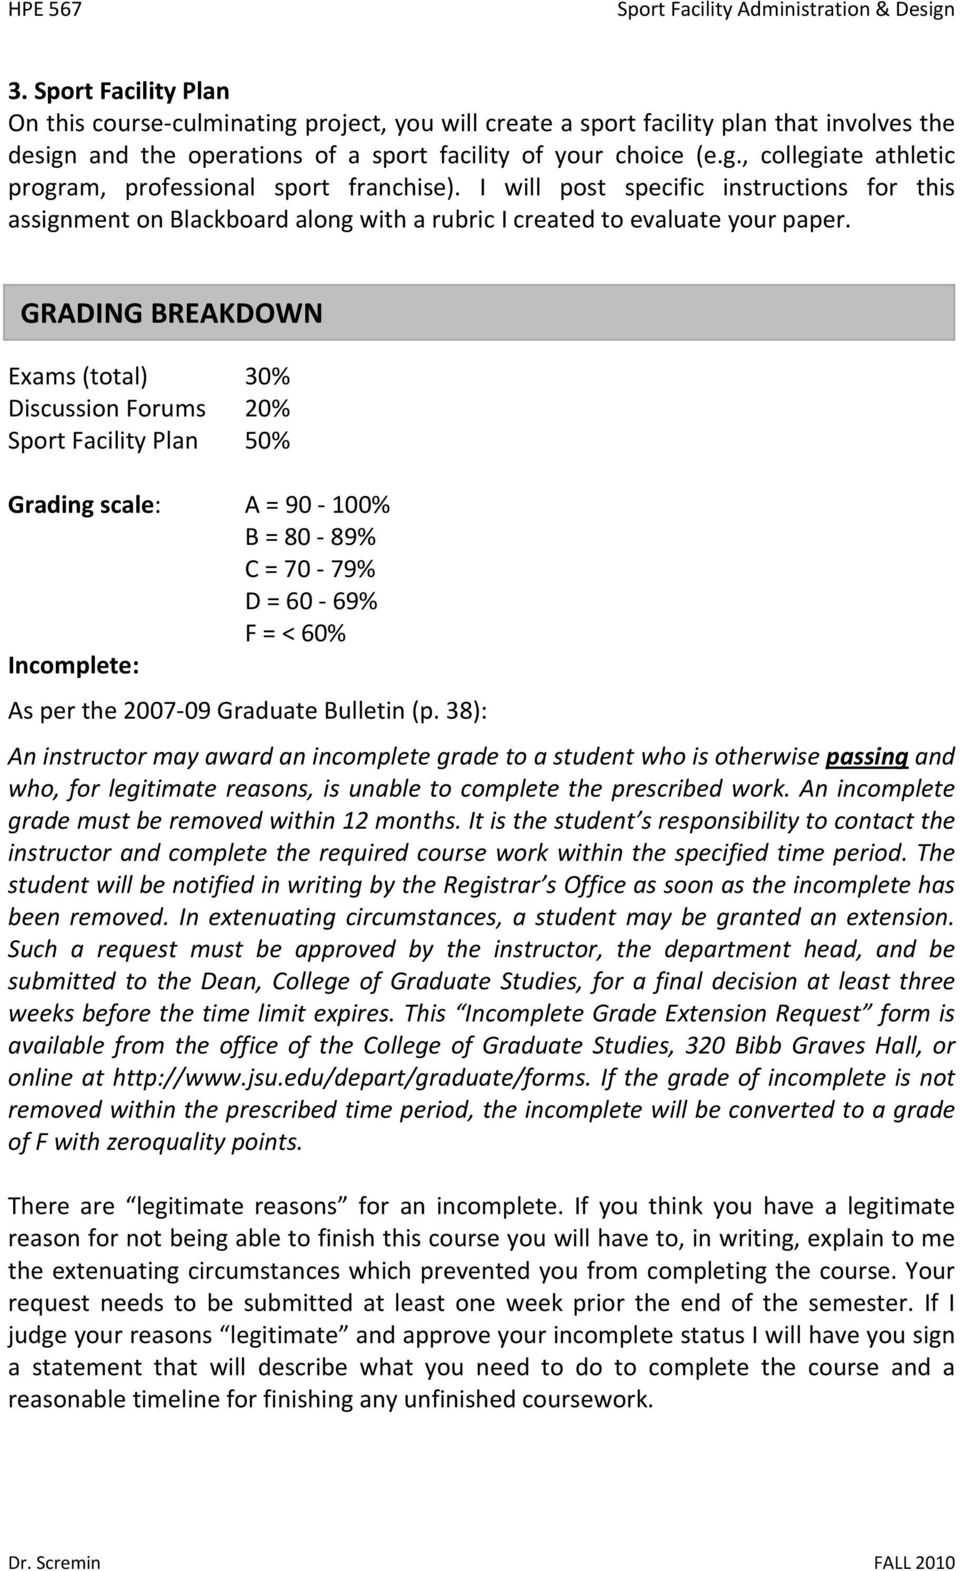 GRADING BREAKDOWN Exams (total) 30% Discussion Forums 20% Sport Facility Plan 50% Grading scale: A = 90 100% B = 80 89% C = 70 79% D = 60 69% F = < 60% Incomplete: As per the 2007 09 Graduate